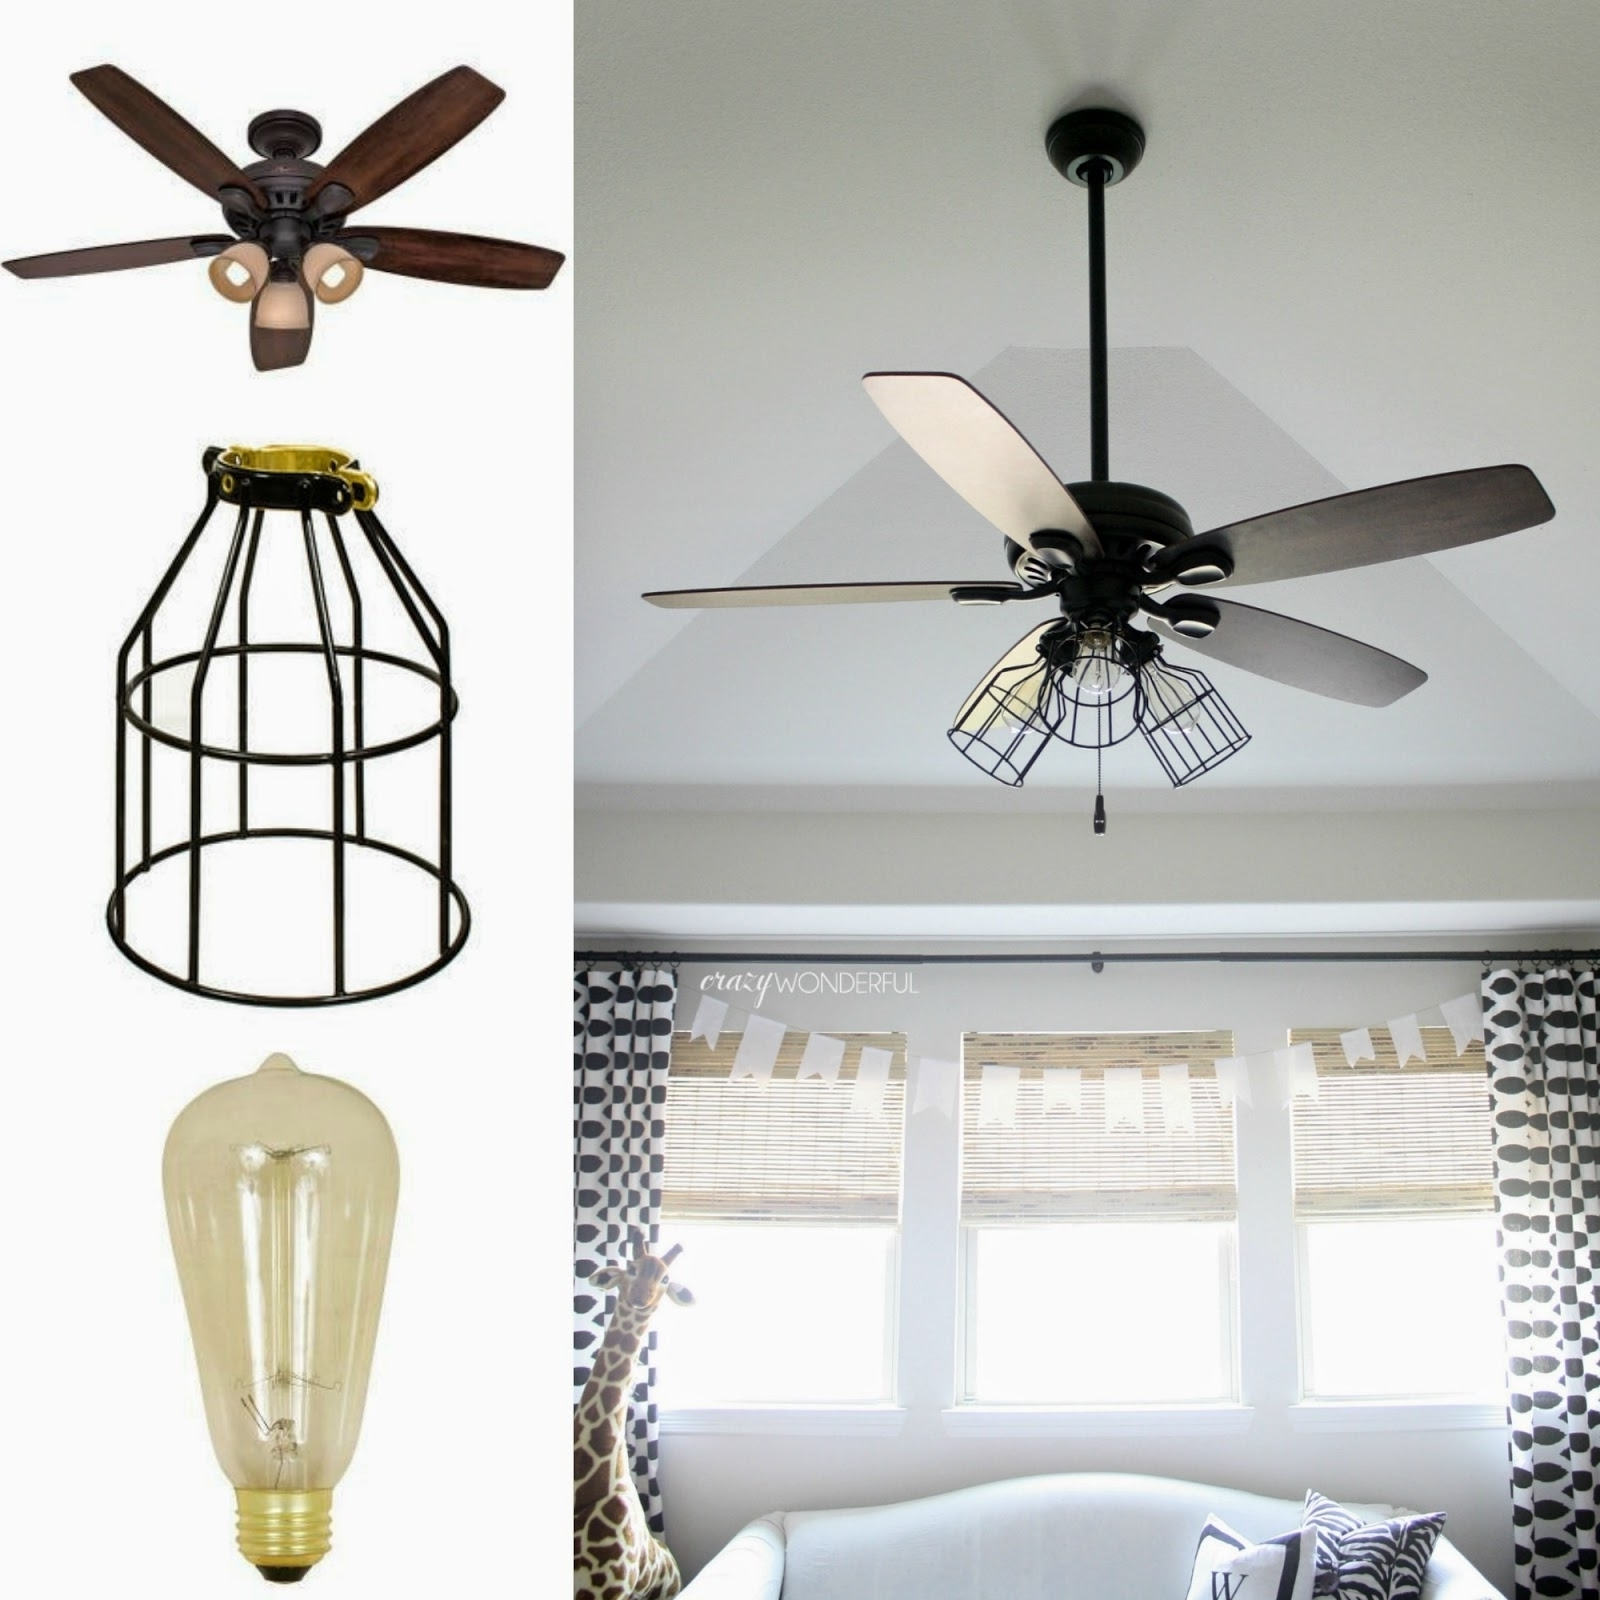 2019 Outdoor Ceiling Lights At Menards Pertaining To Interior: Fill Your Home With Wonderful Menards Ceiling Fans With (Gallery 16 of 20)